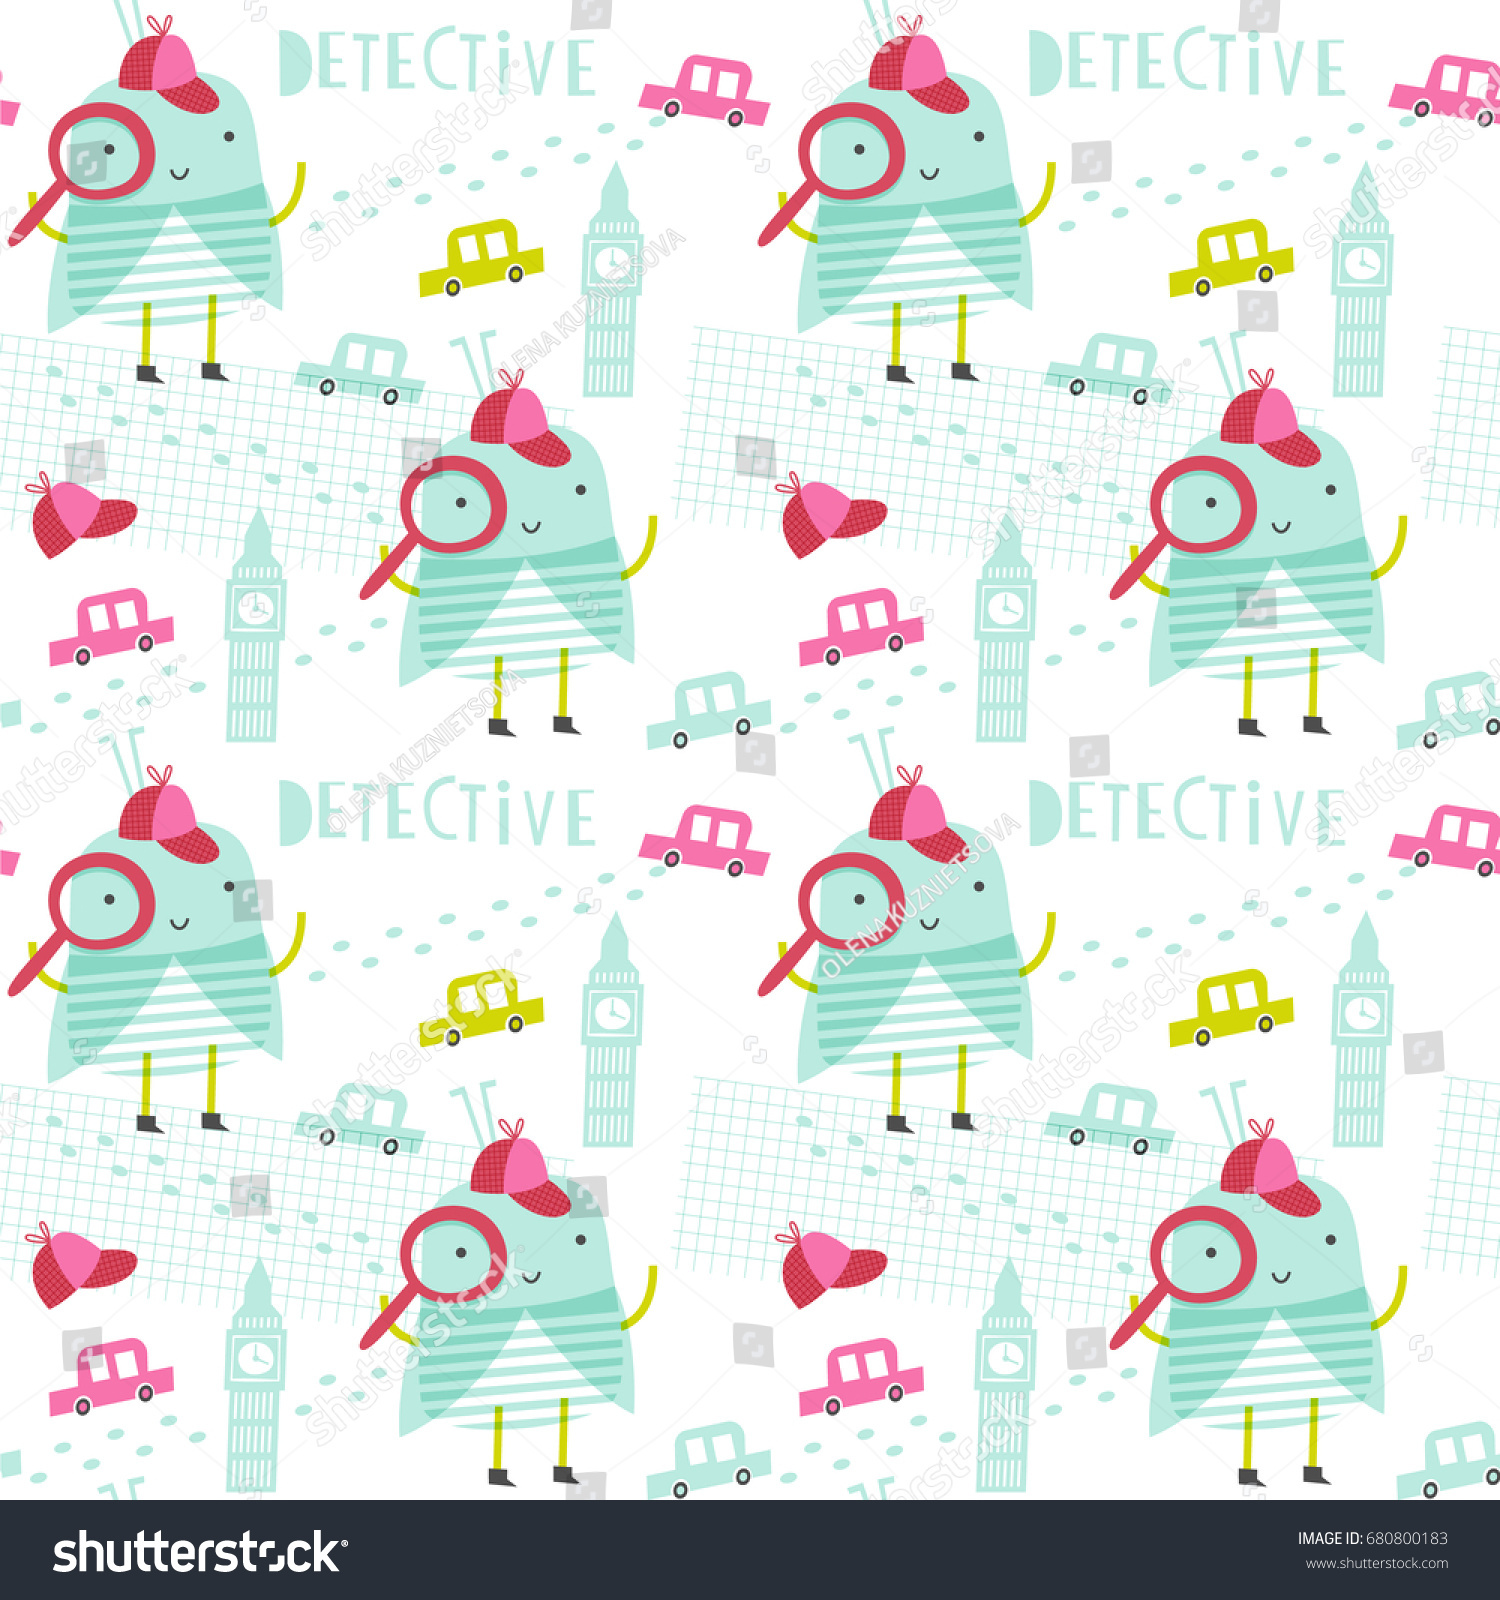 Seamless Vector Pattern Detective Bug Doodle Stock Vector (Royalty ...